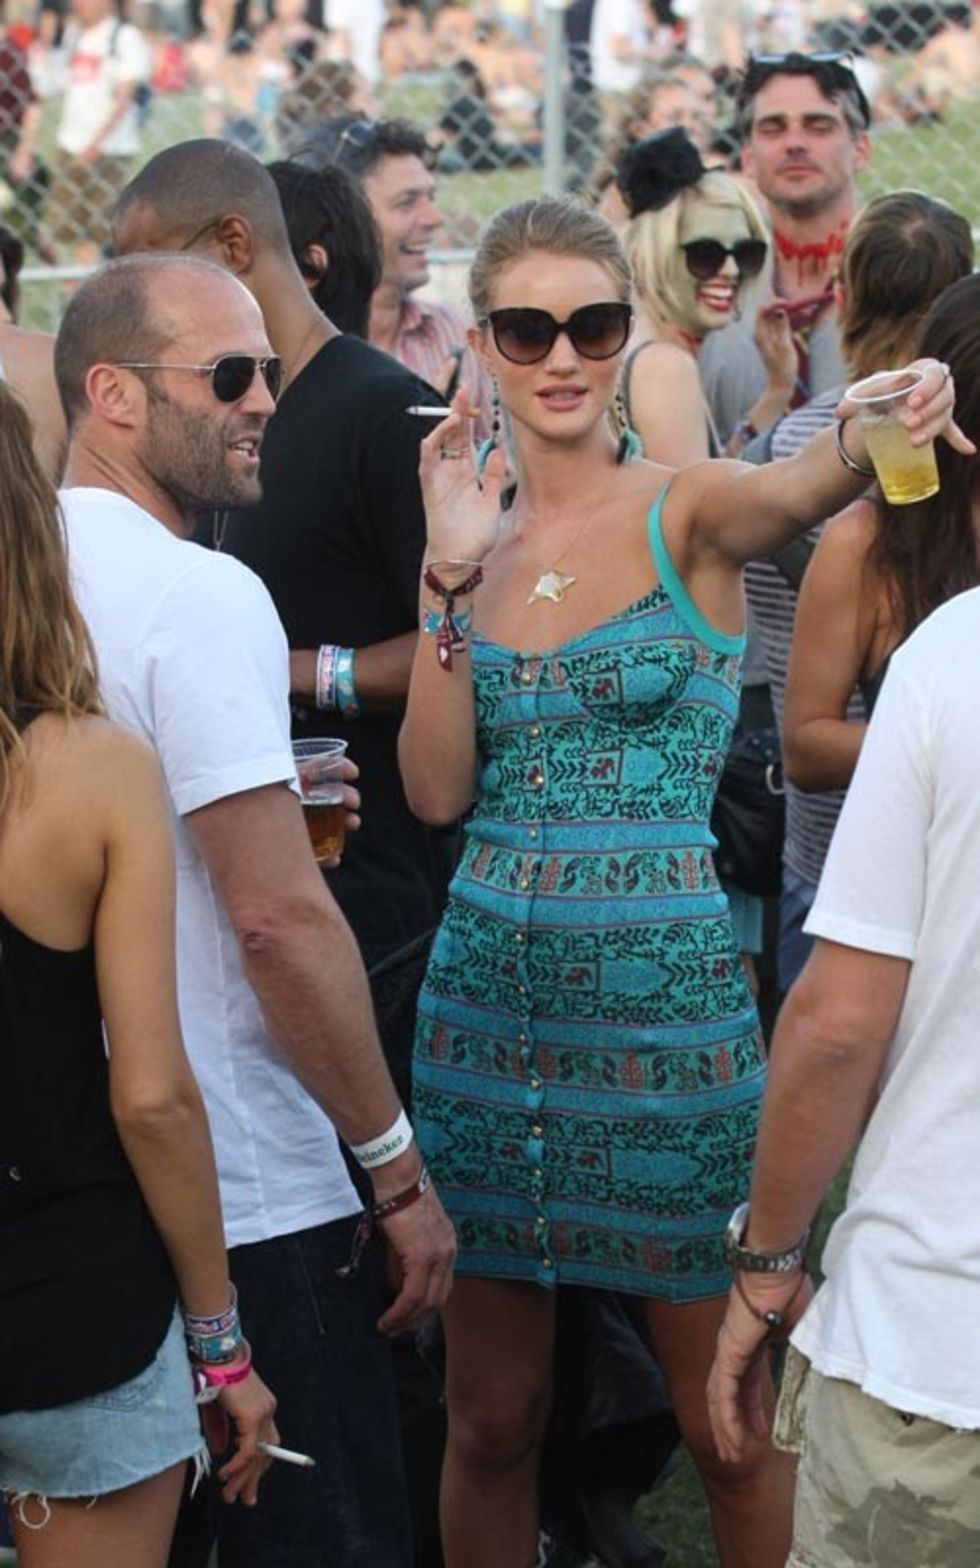 rosie-huntington-whiteley-with-jason-statham-at-coachella ...